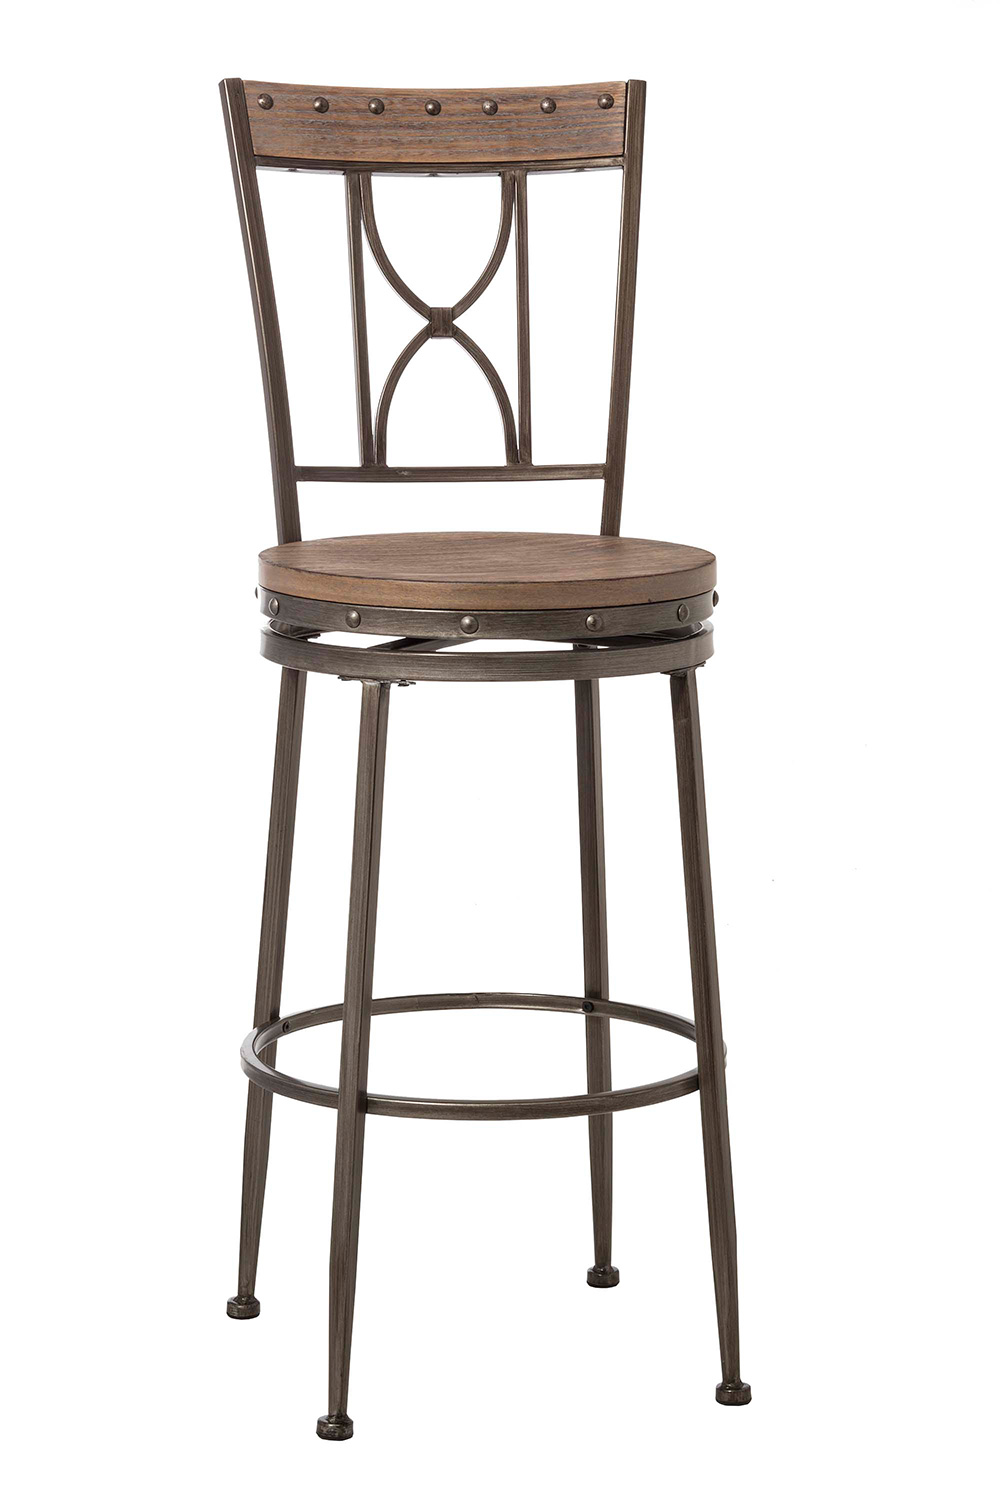 Hillsdale Paddock Swivel Bar Stool - Brushed Steel Metal/Distressed Brown